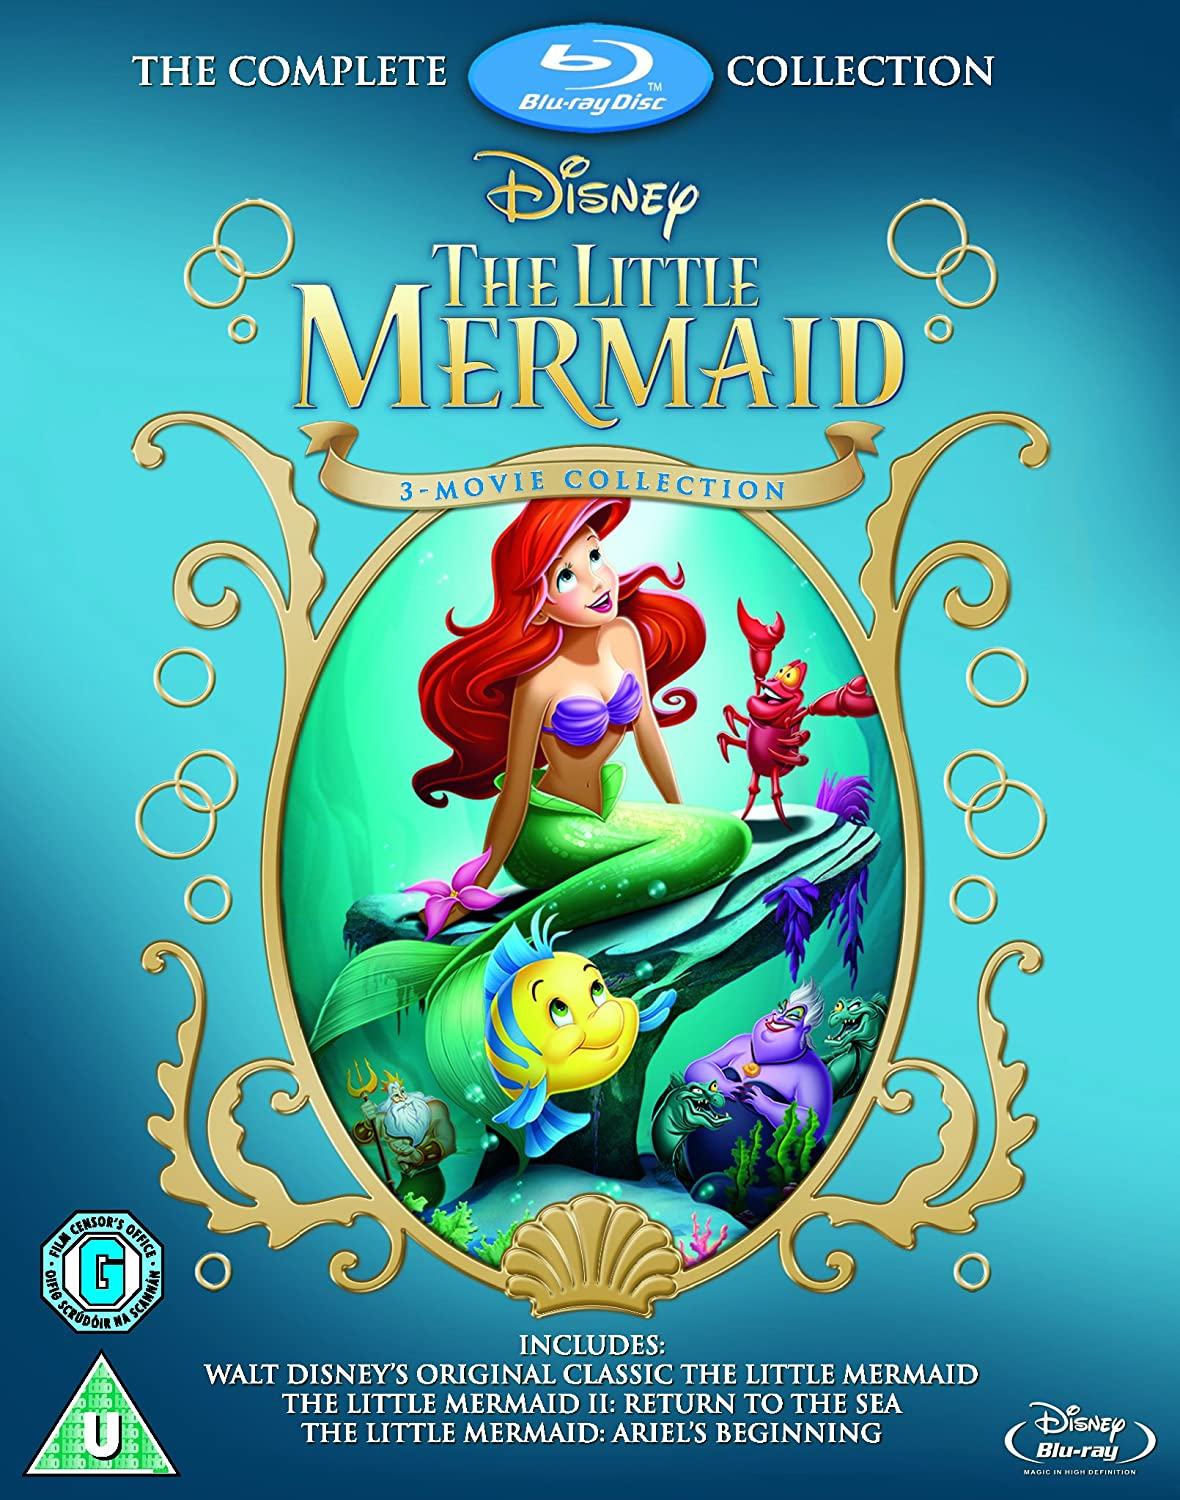 amazoncom the little mermaid complete collection blu ray import jodi benson samuel e wright pat carroll ron clements john musker jim kammeru